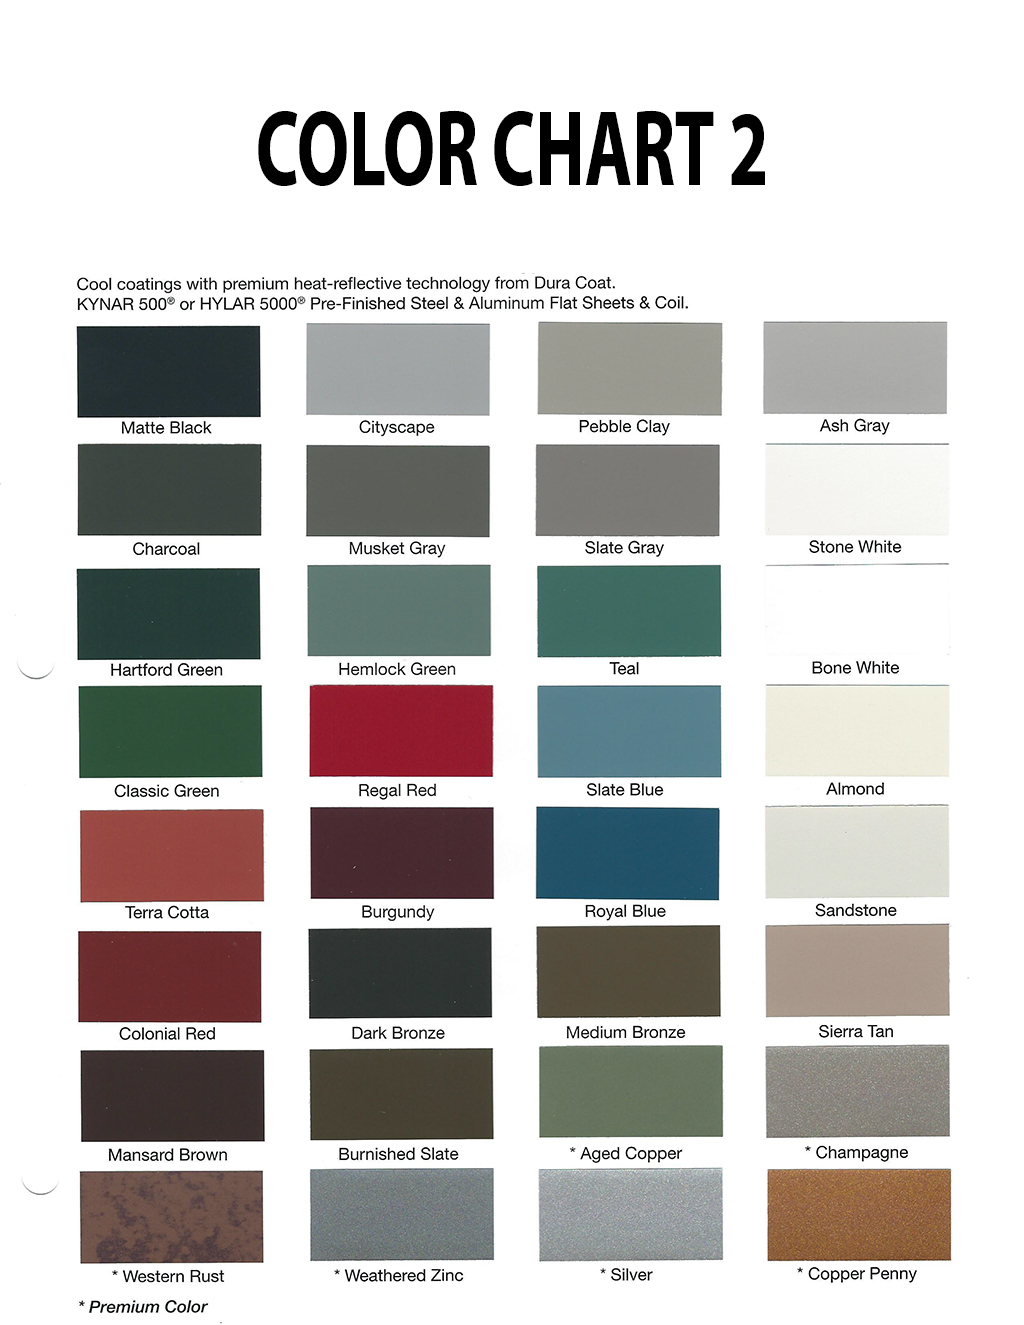 Calebs roofing metal roofing colors commercial roofing metal roofing colors metal colors commercial roofing contractor denver nvjuhfo Choice Image